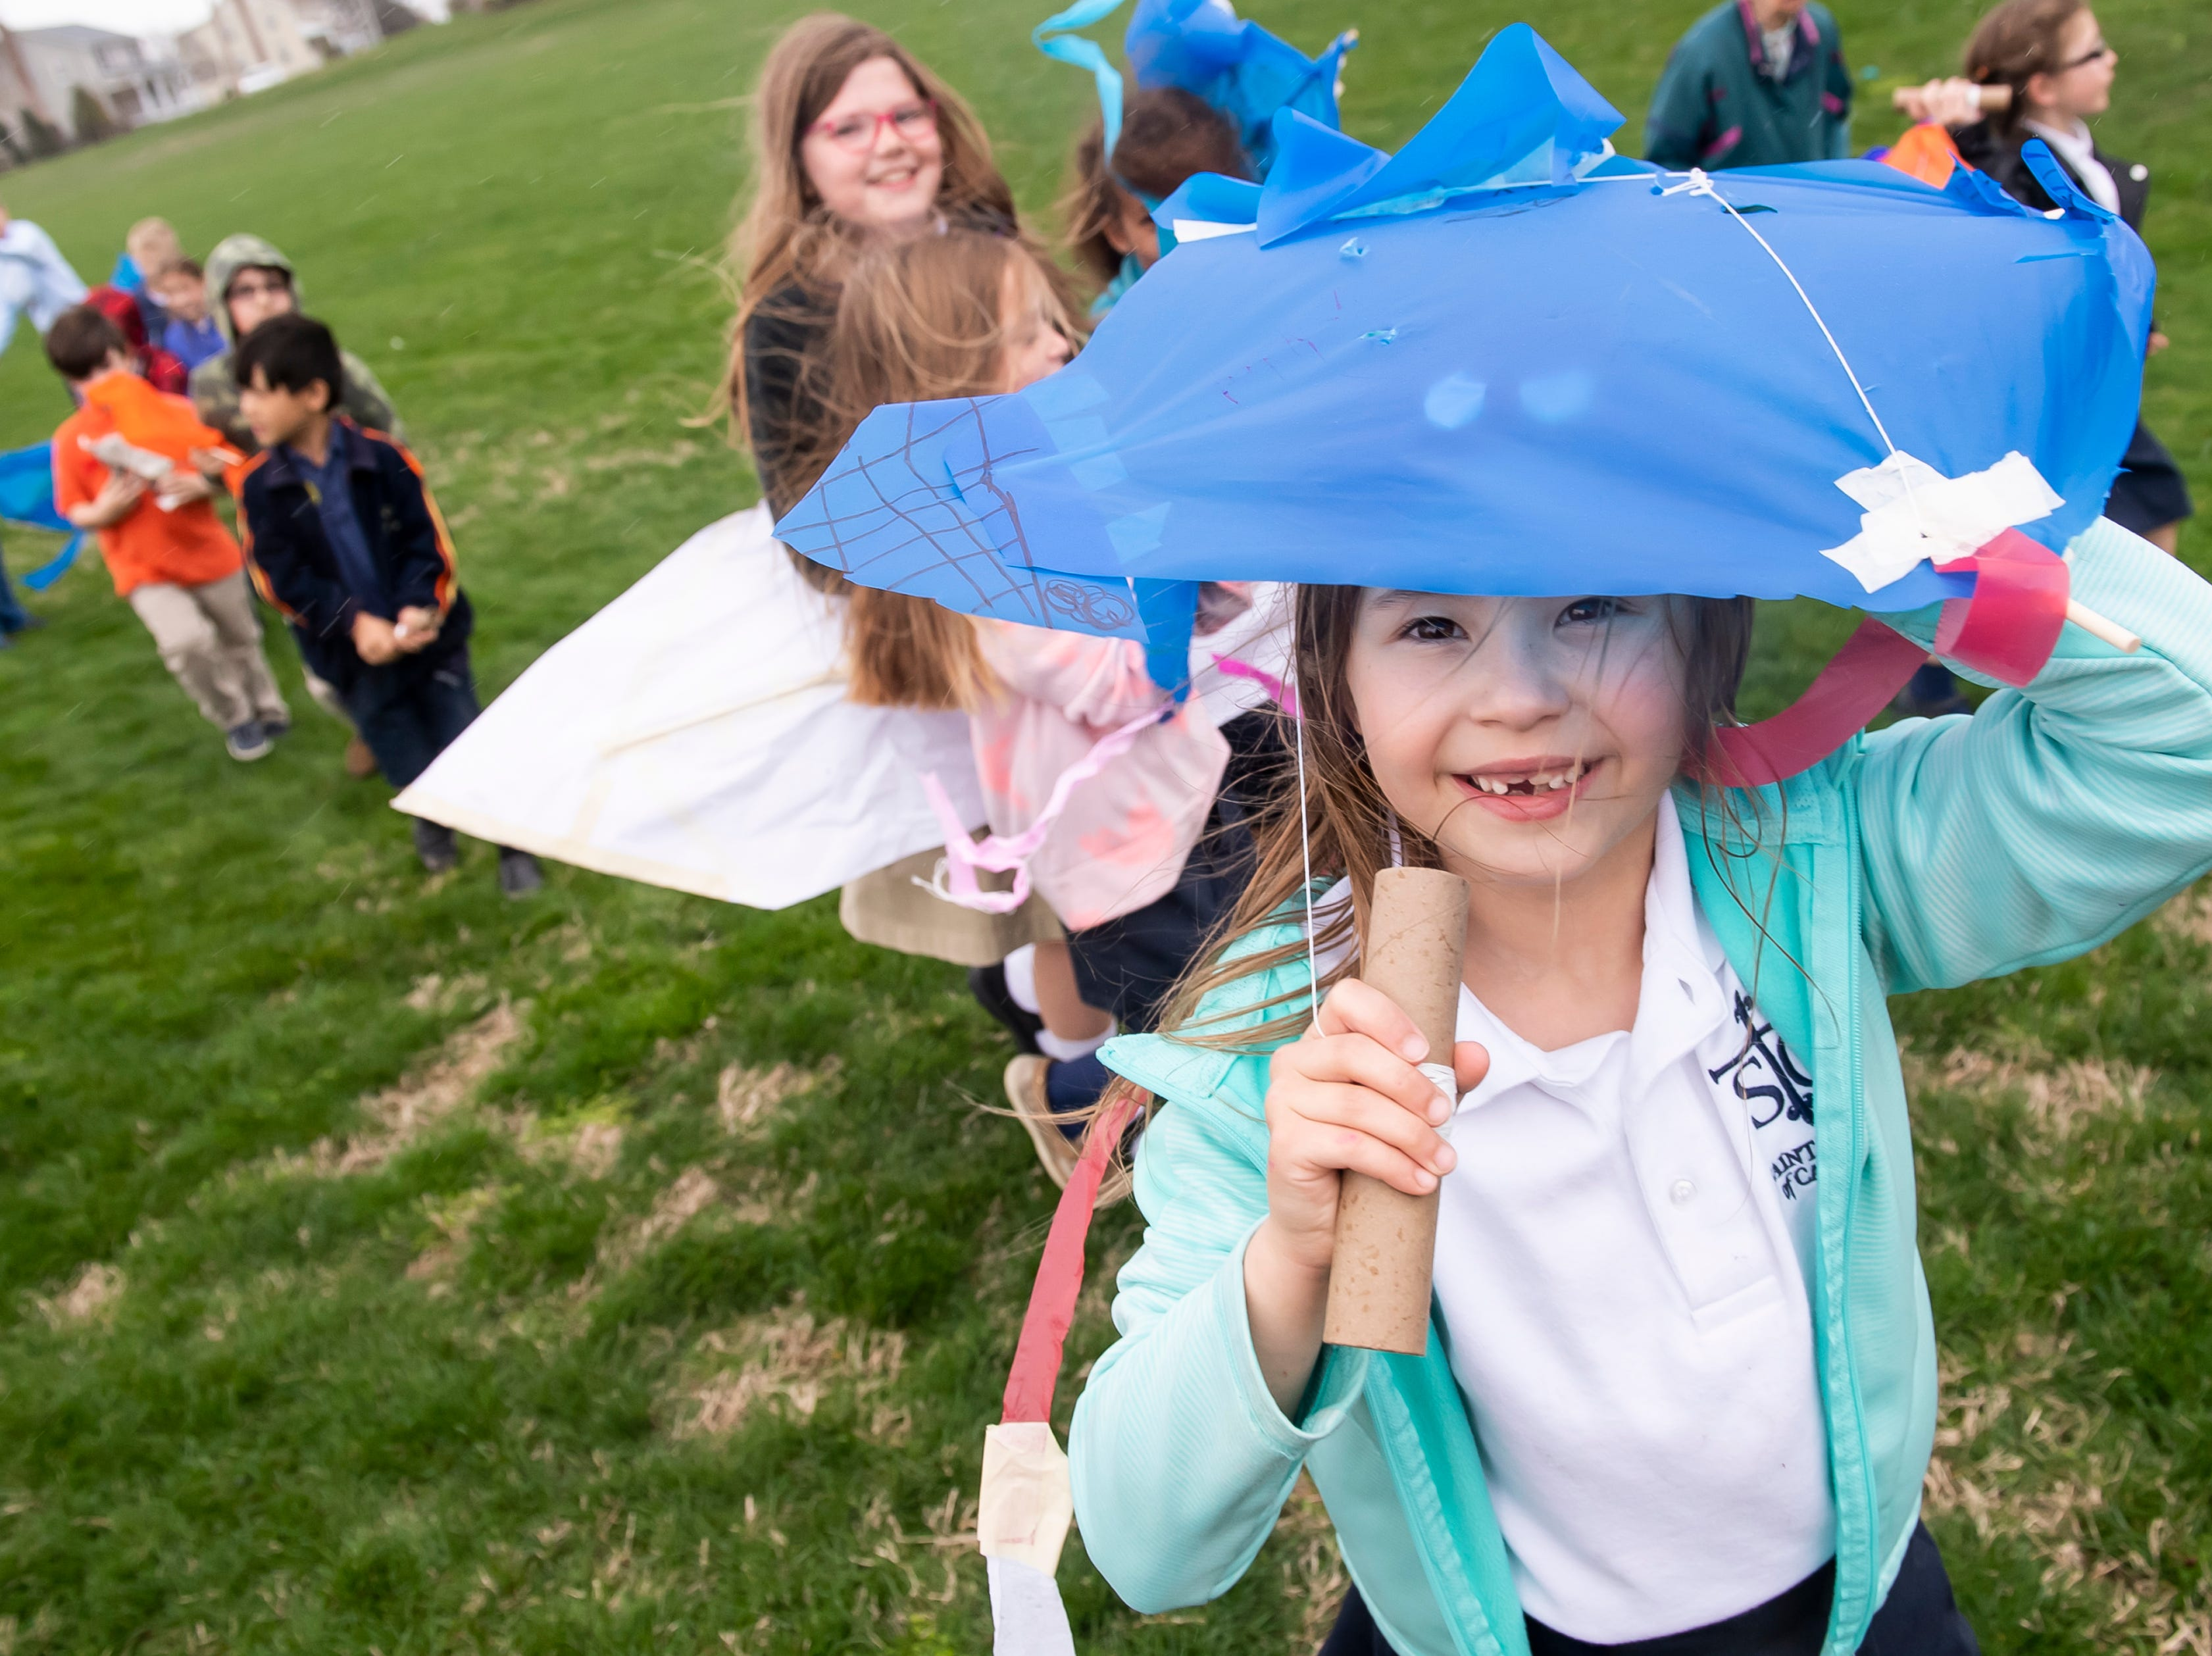 Students from St. Teresa of Calcutta Catholic School use their homemade kites to shield themselves from the rain following a special kite day at the school's Conewago campus on Friday, April 12, 2019.